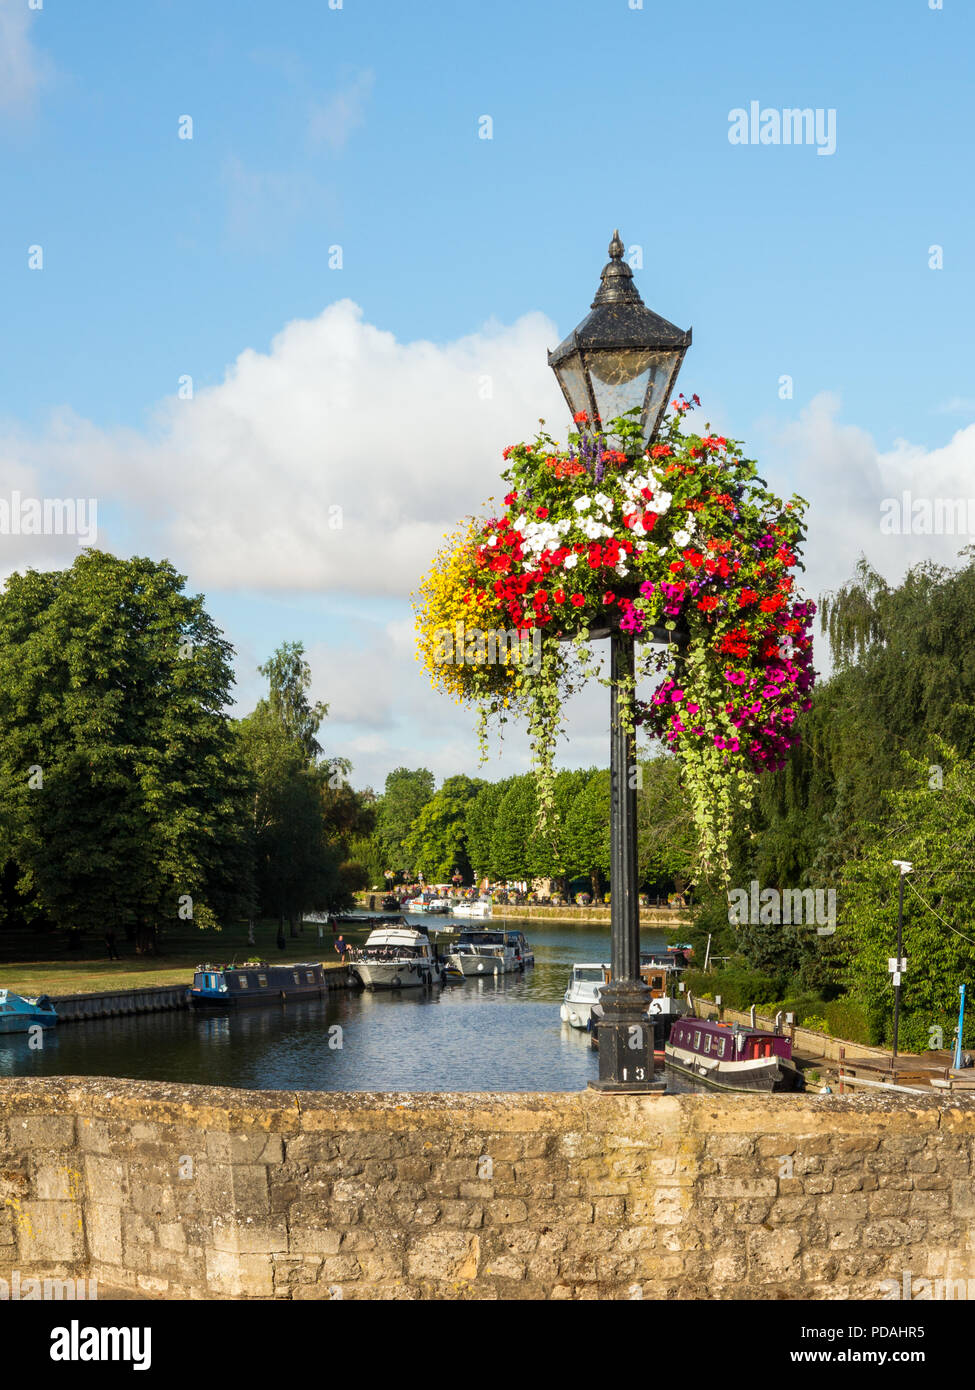 Boats moored on the river Thames at Abingdon Oxfordshire  seen from the river bridge with old lamp post and floral hanging baskets - Stock Image